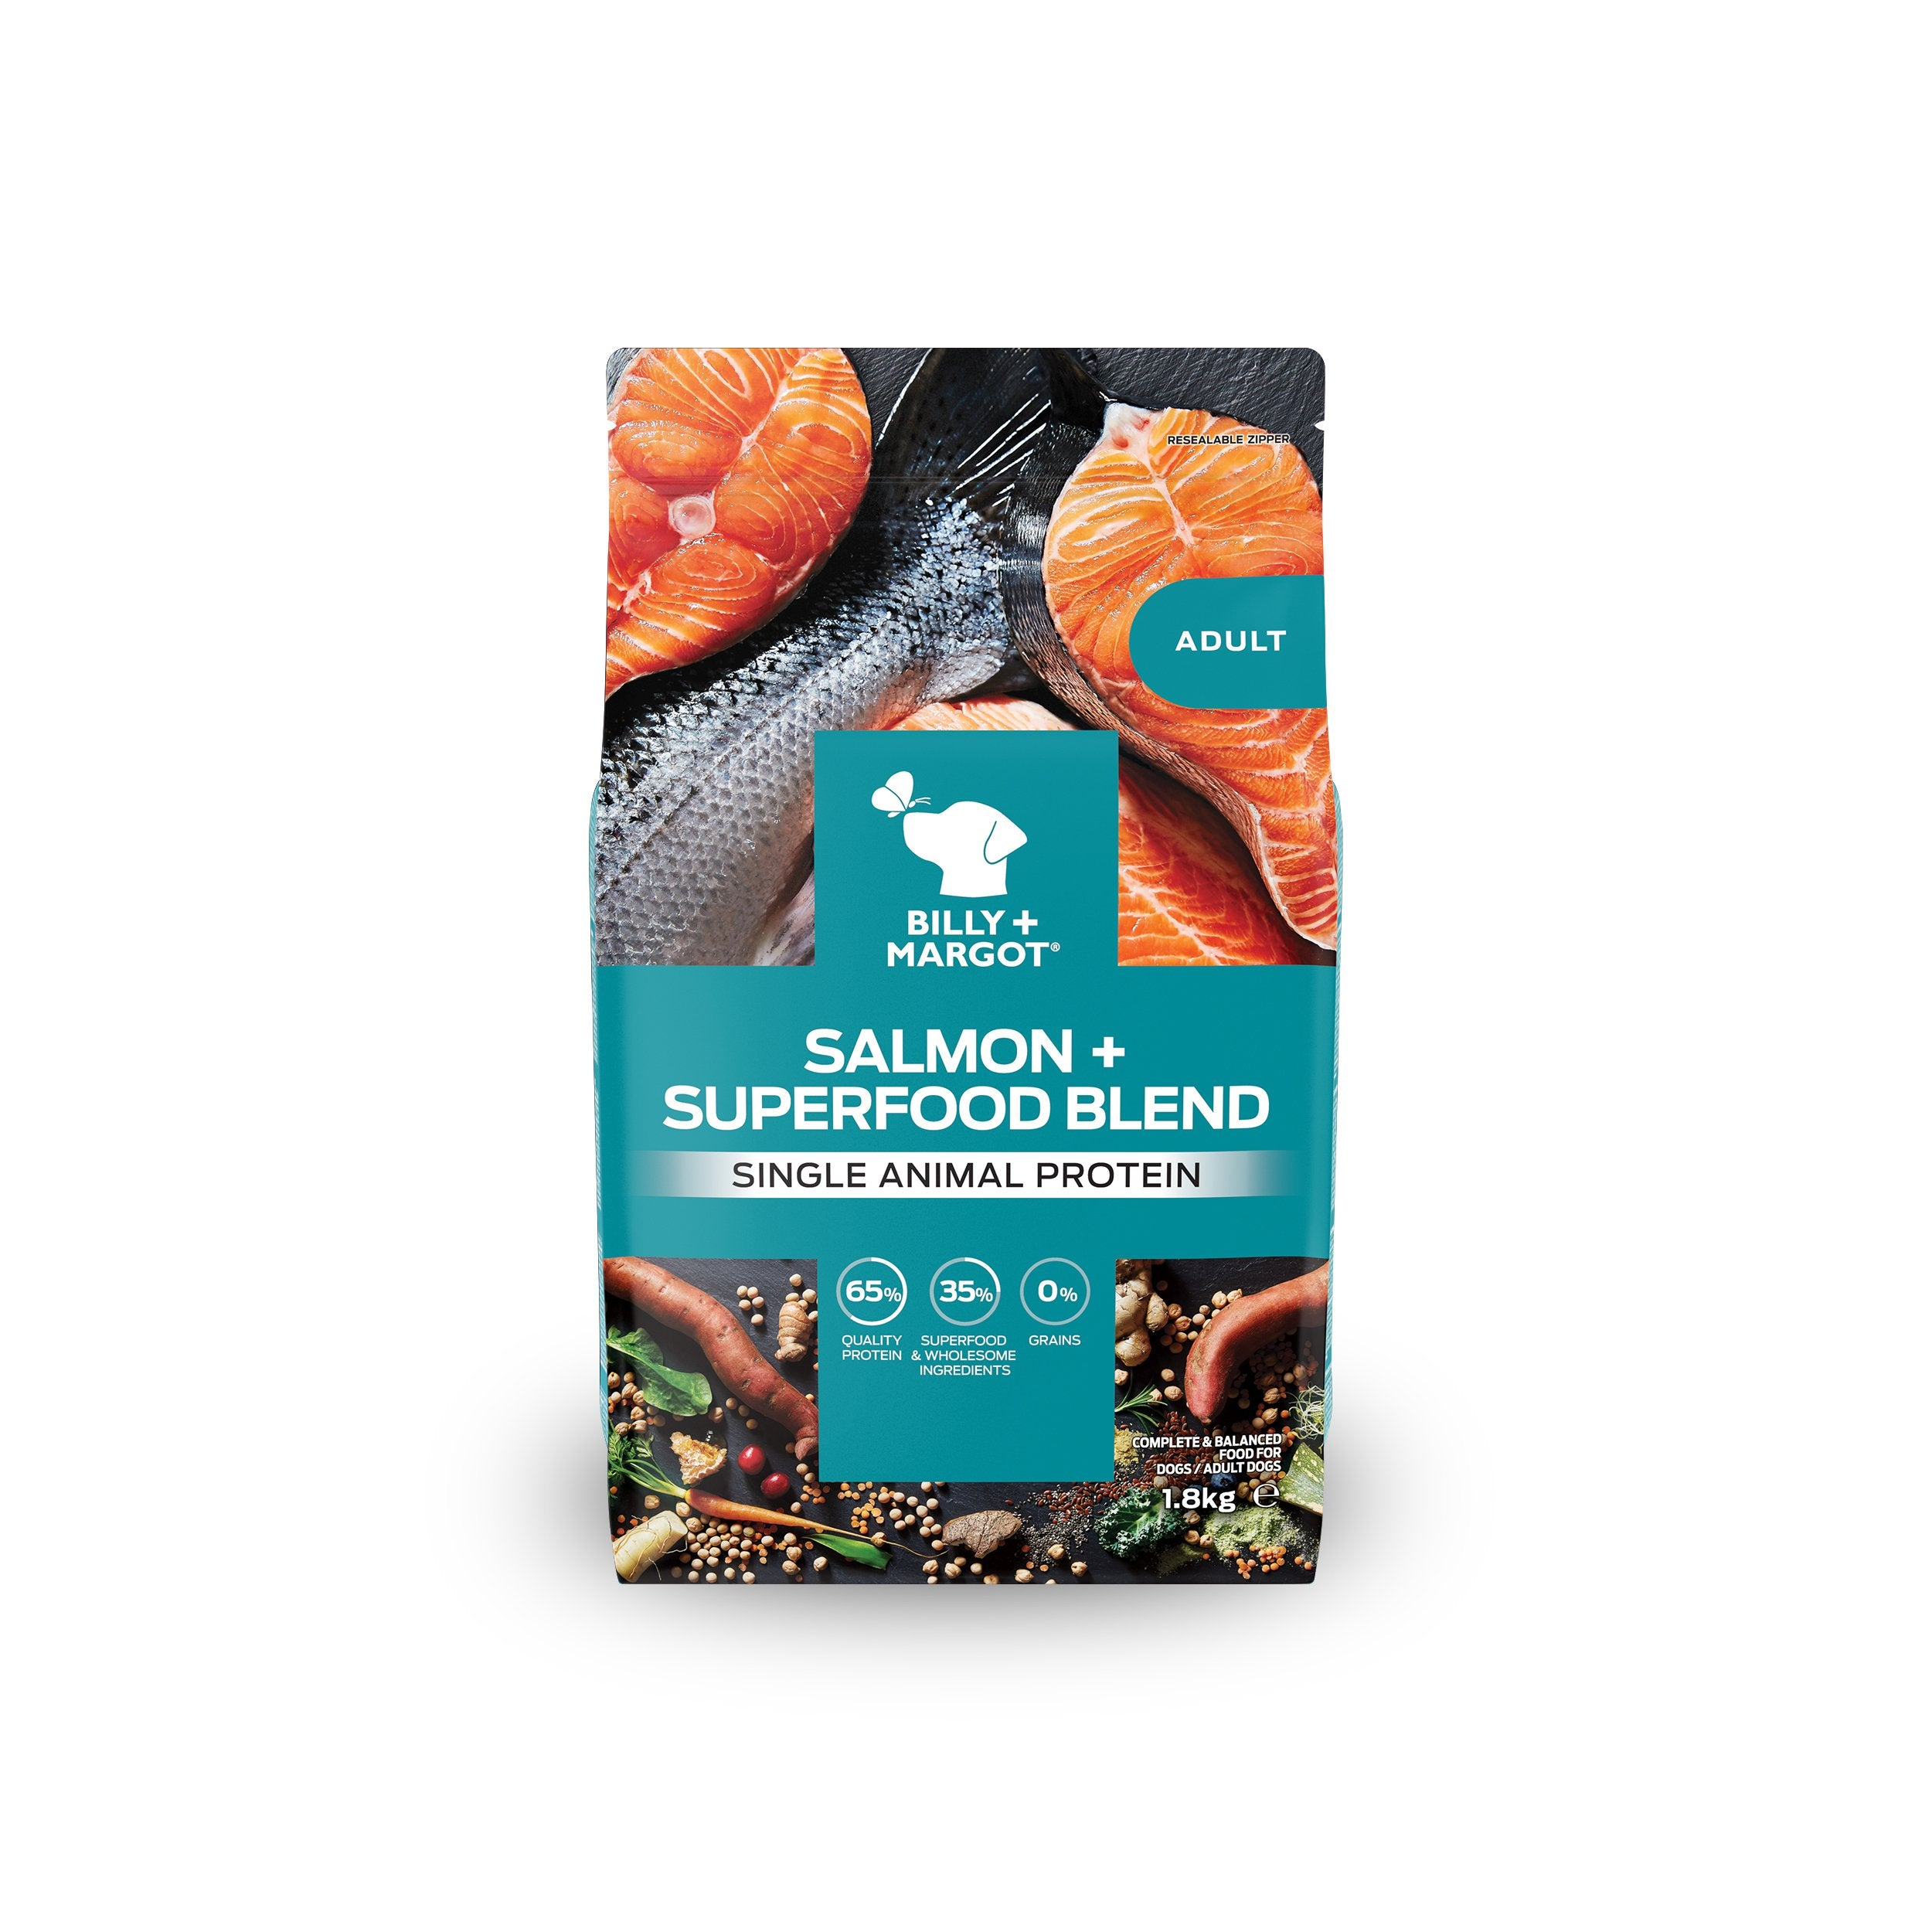 Billy + Margot Salmon + Superfood Blend Dry Dog Food